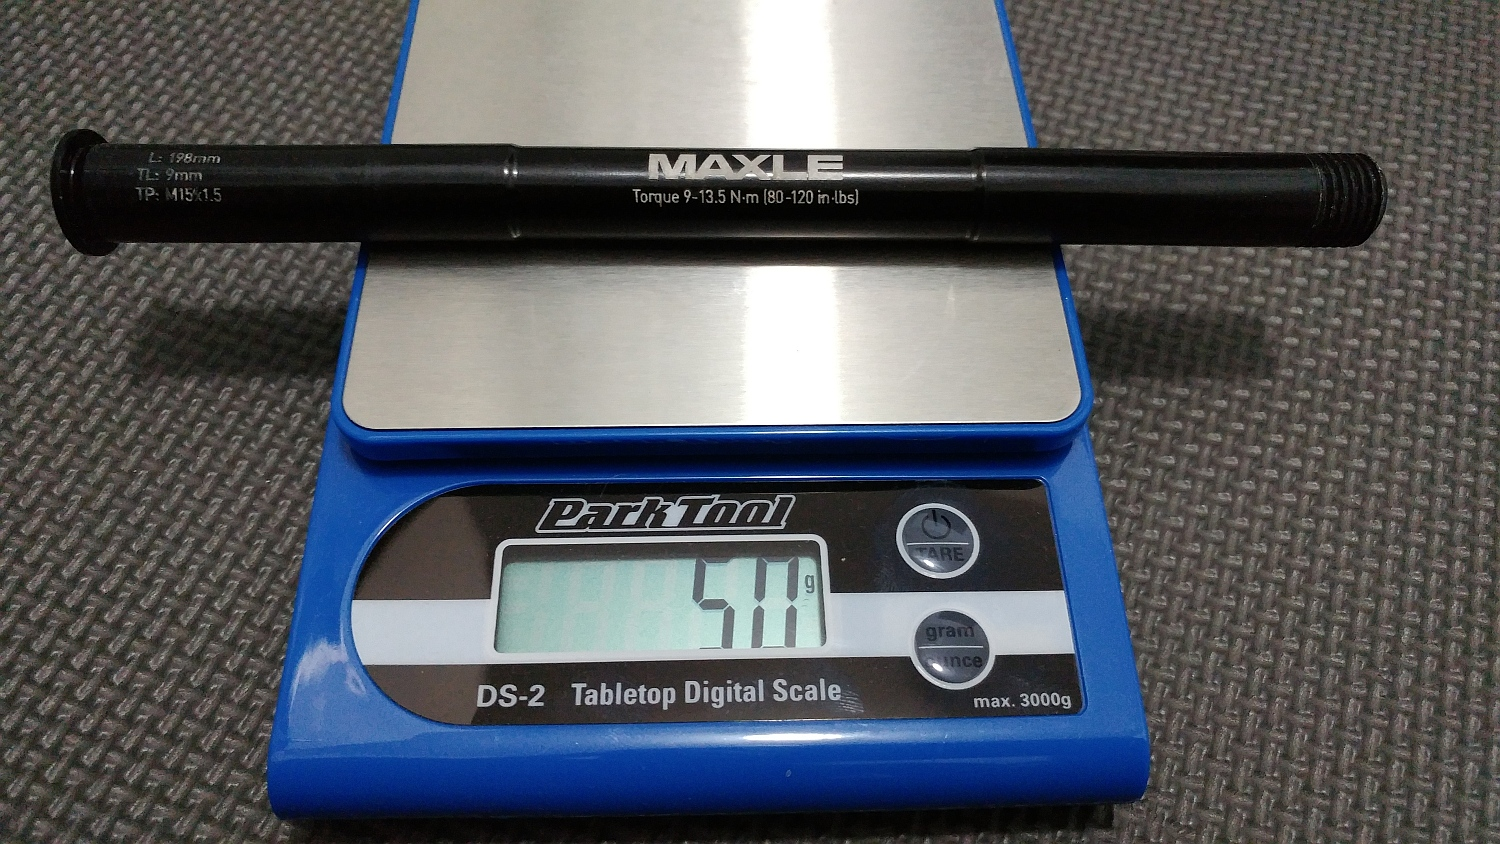 BLUTO RCT3 MAXLE axle = 50gr on the digital scale